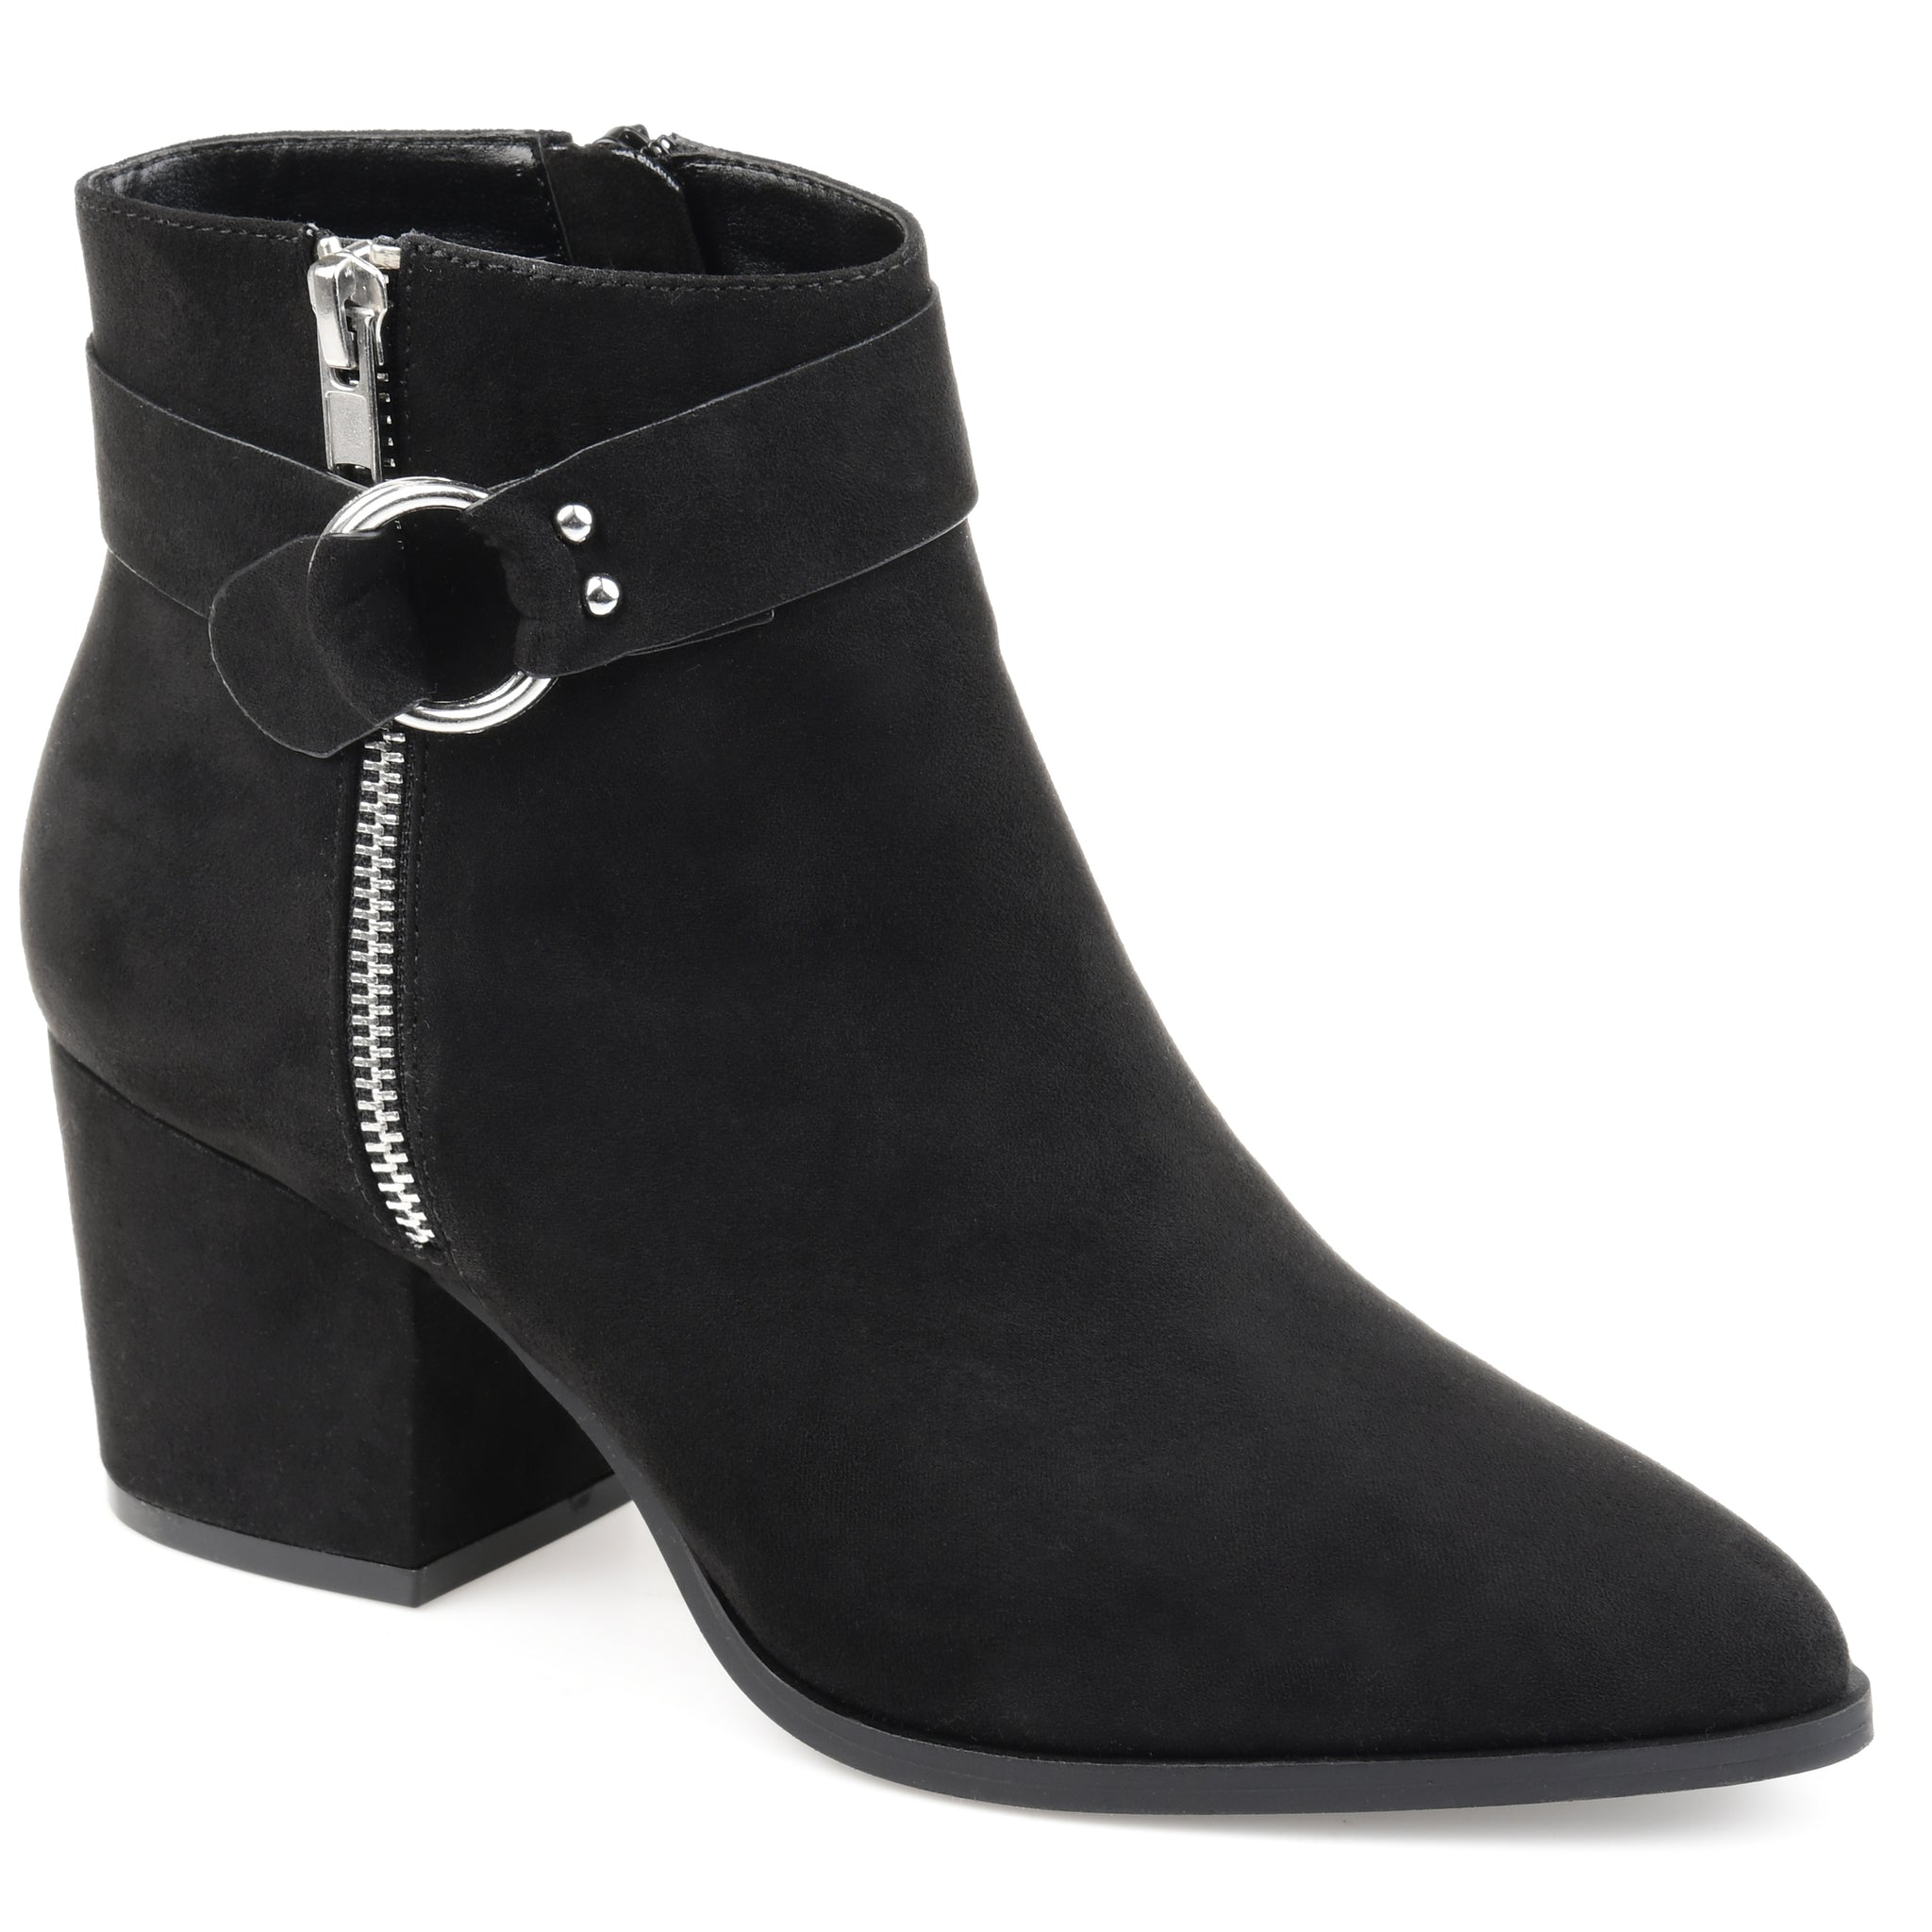 Loop Buckle Accent Suede Bootie